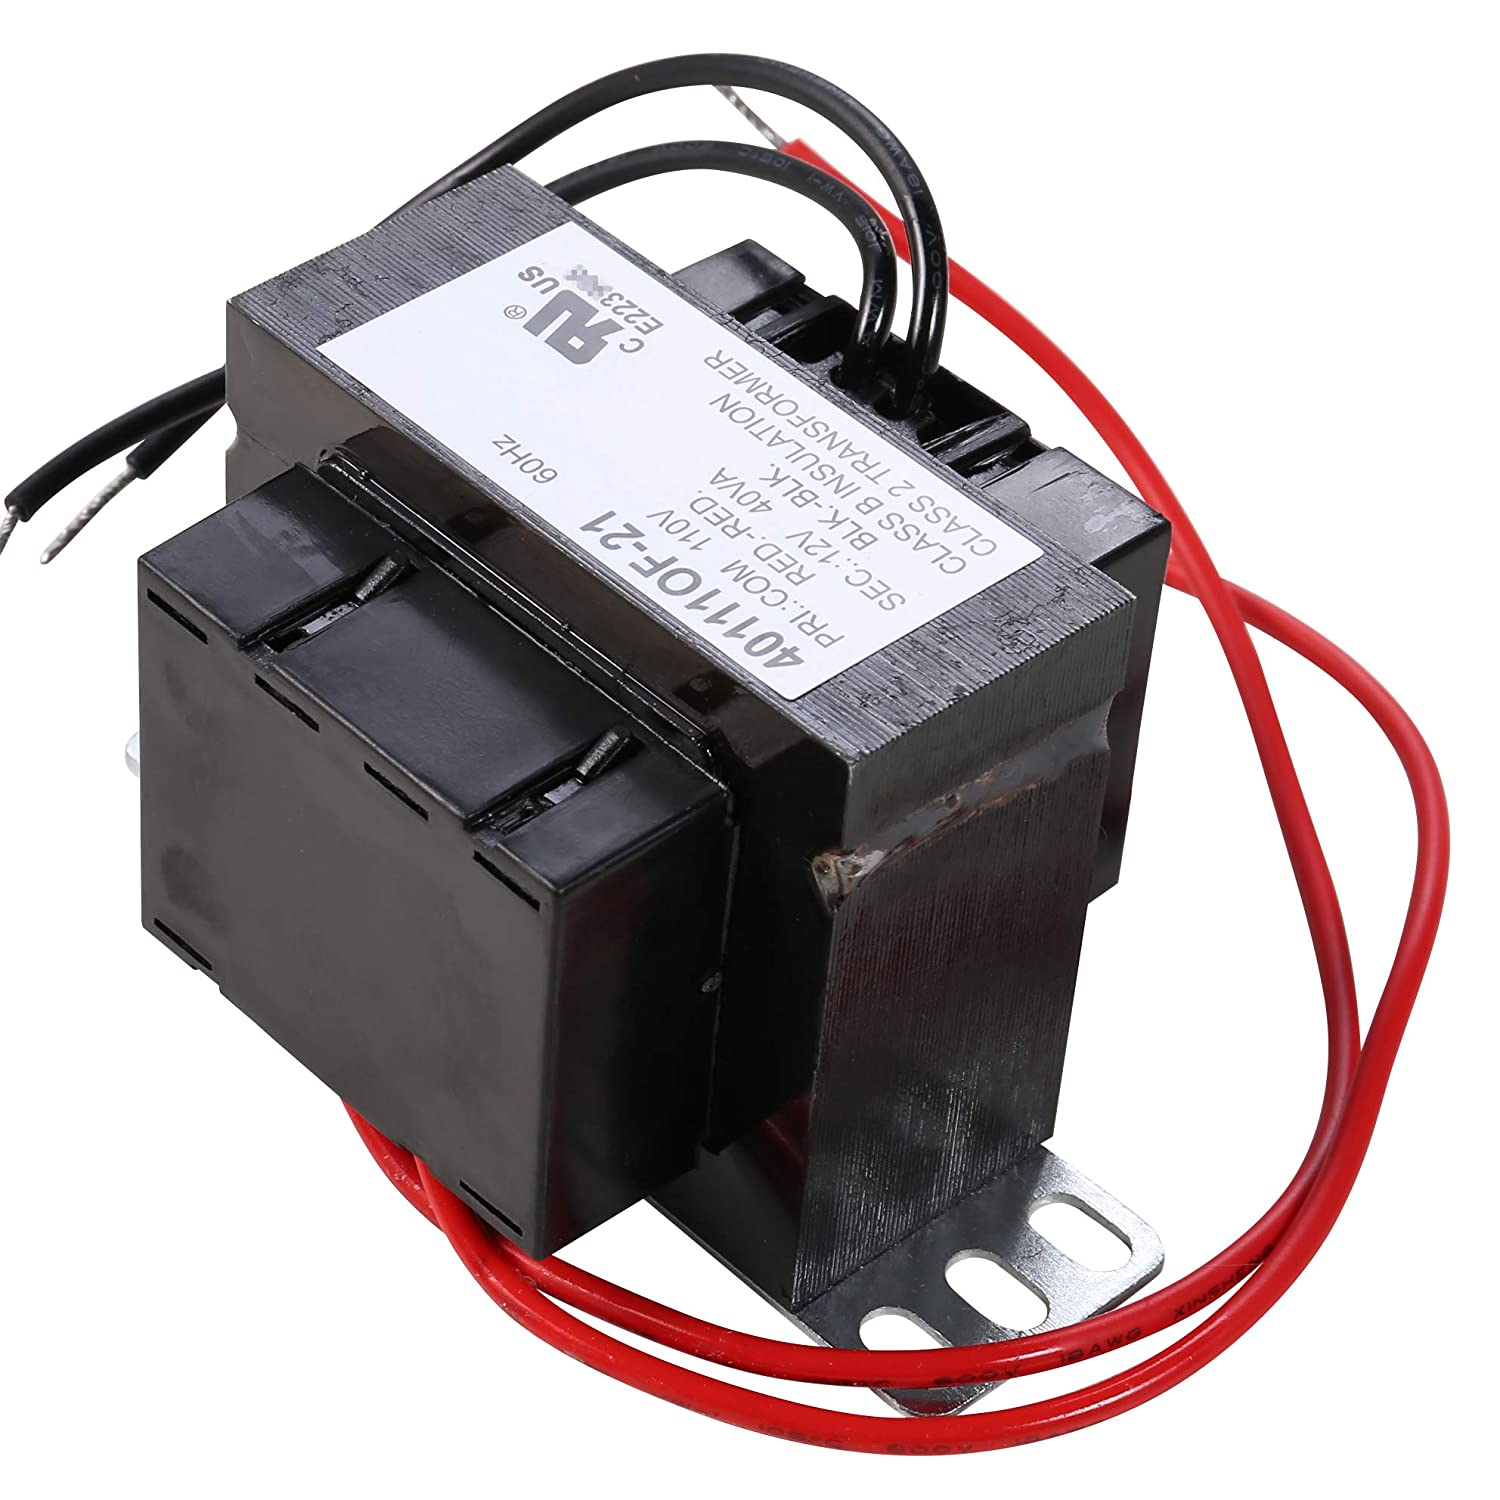 UHPPOTE UL-Recognized Class 2 Transformer Foot Mount 40VA Rating 110VAC Input 12VAC Output UT-40111OF-21